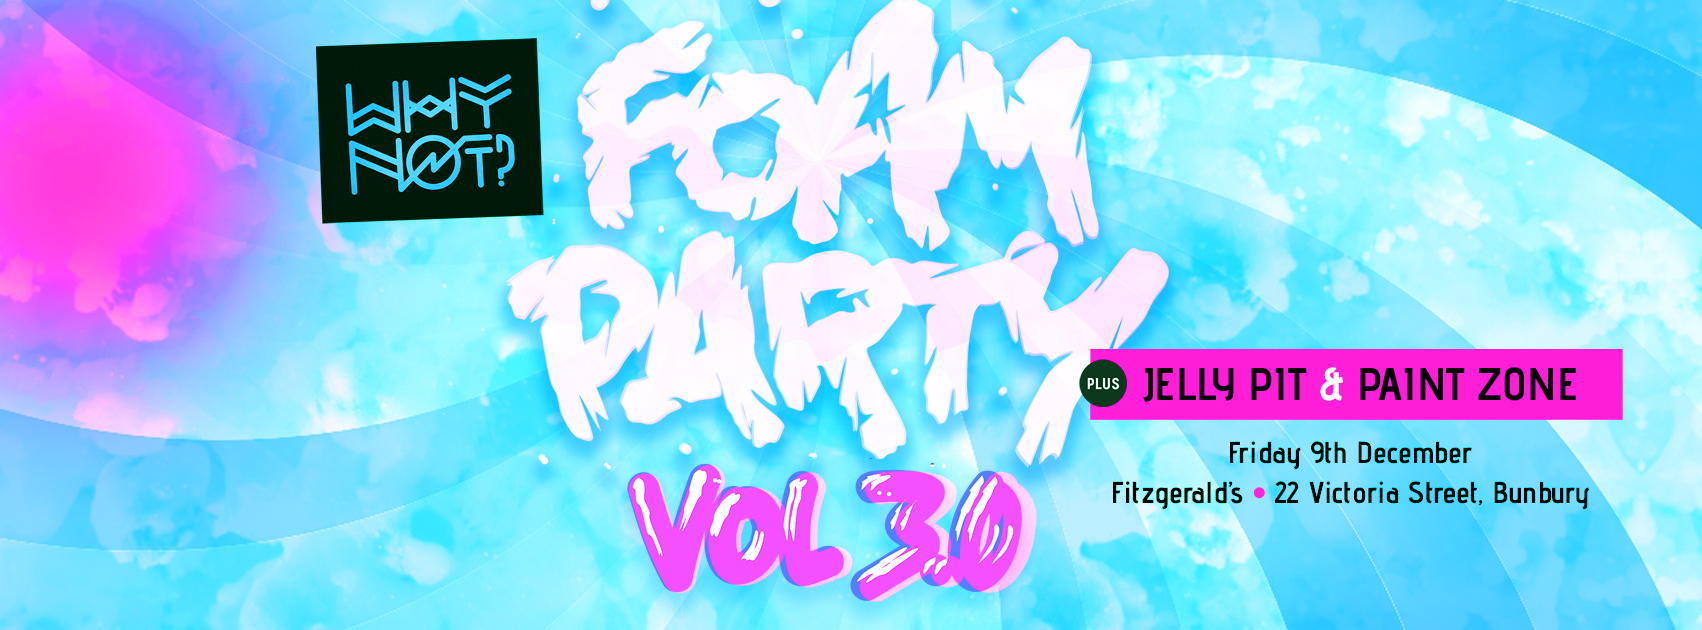 Why Not? FOAM PARTY Vol 3 0